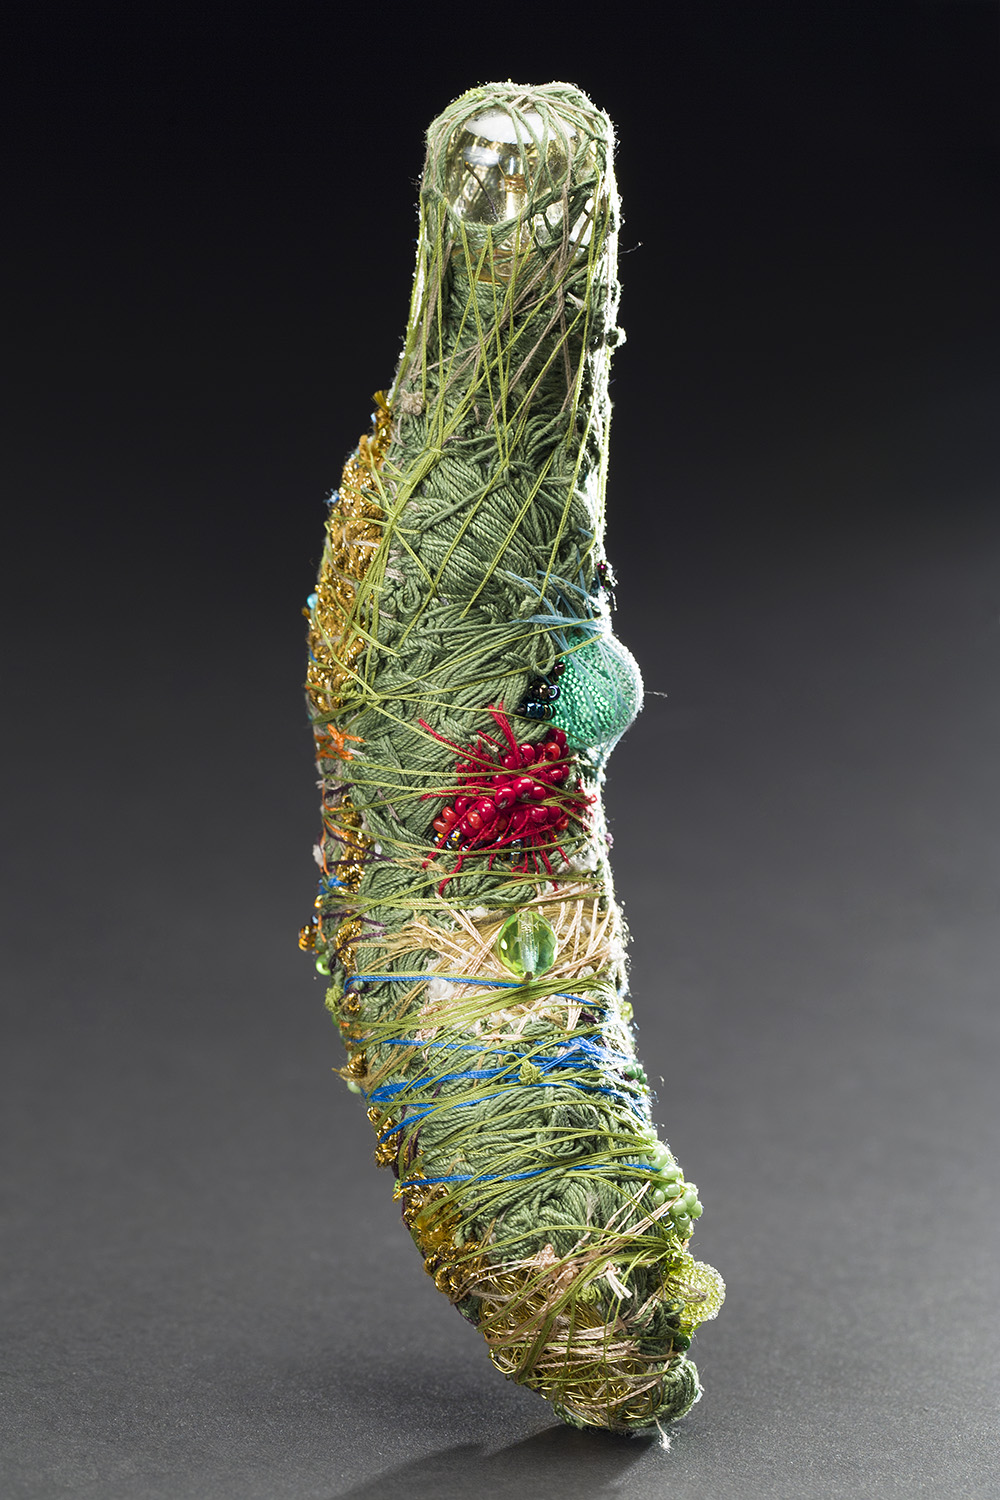 Sandra Sheehy    Untitled  , 2015 Beads, thread, sequins, fabric, light bulb 7 x 2 x 2 inches 17.8 x 5.1 x 5.1 cm SSe 95